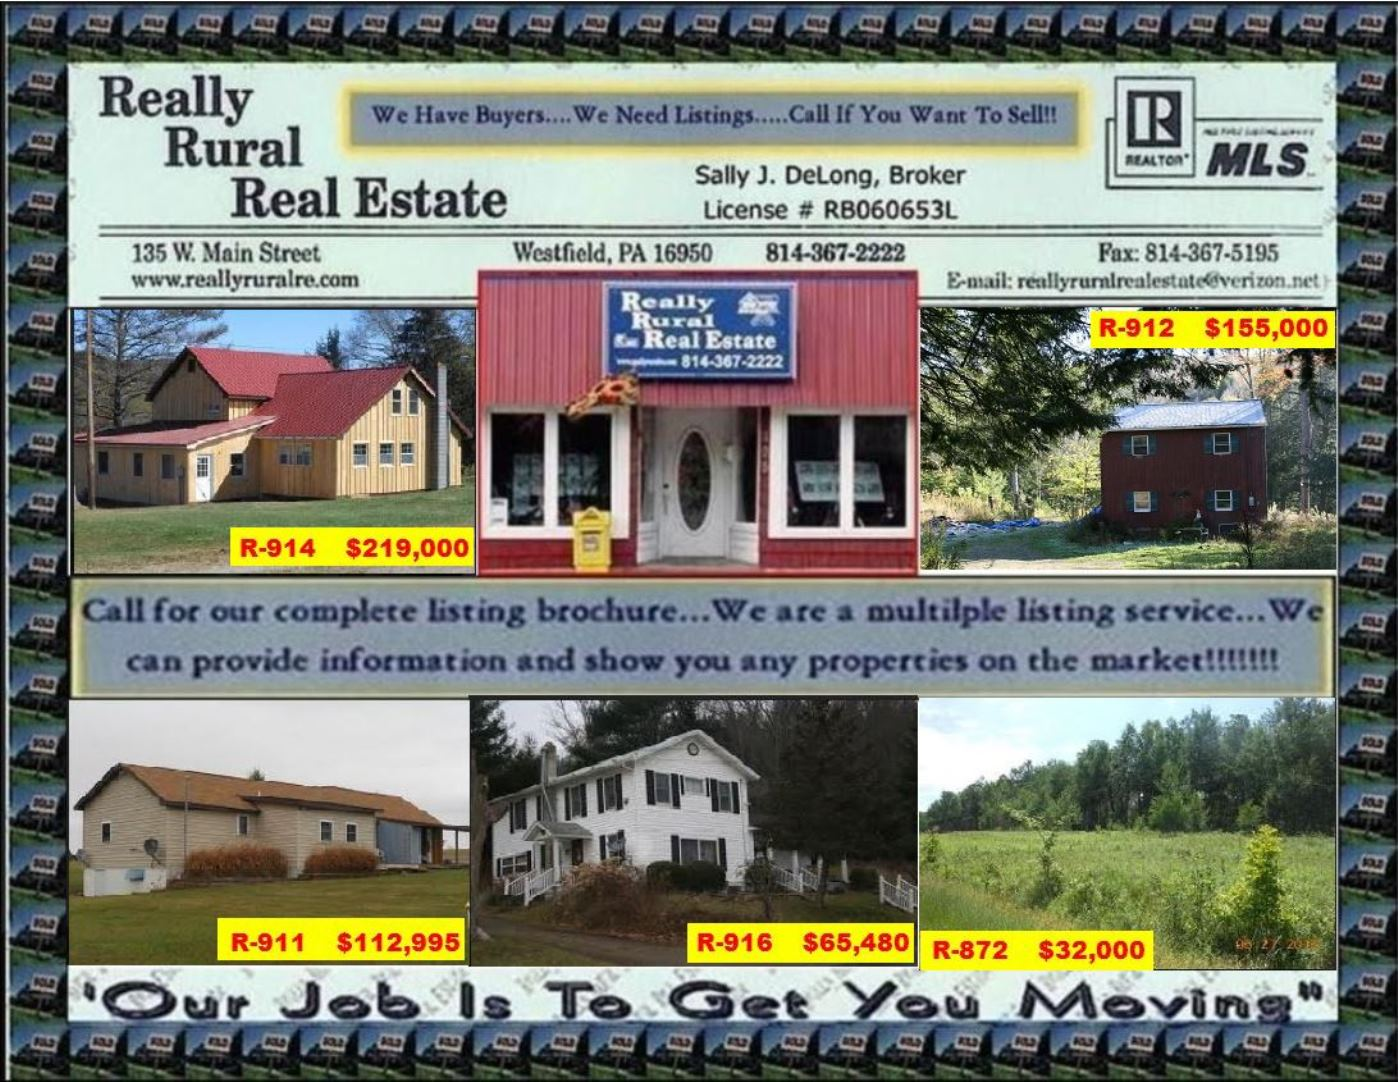 Really Rural Real Estate